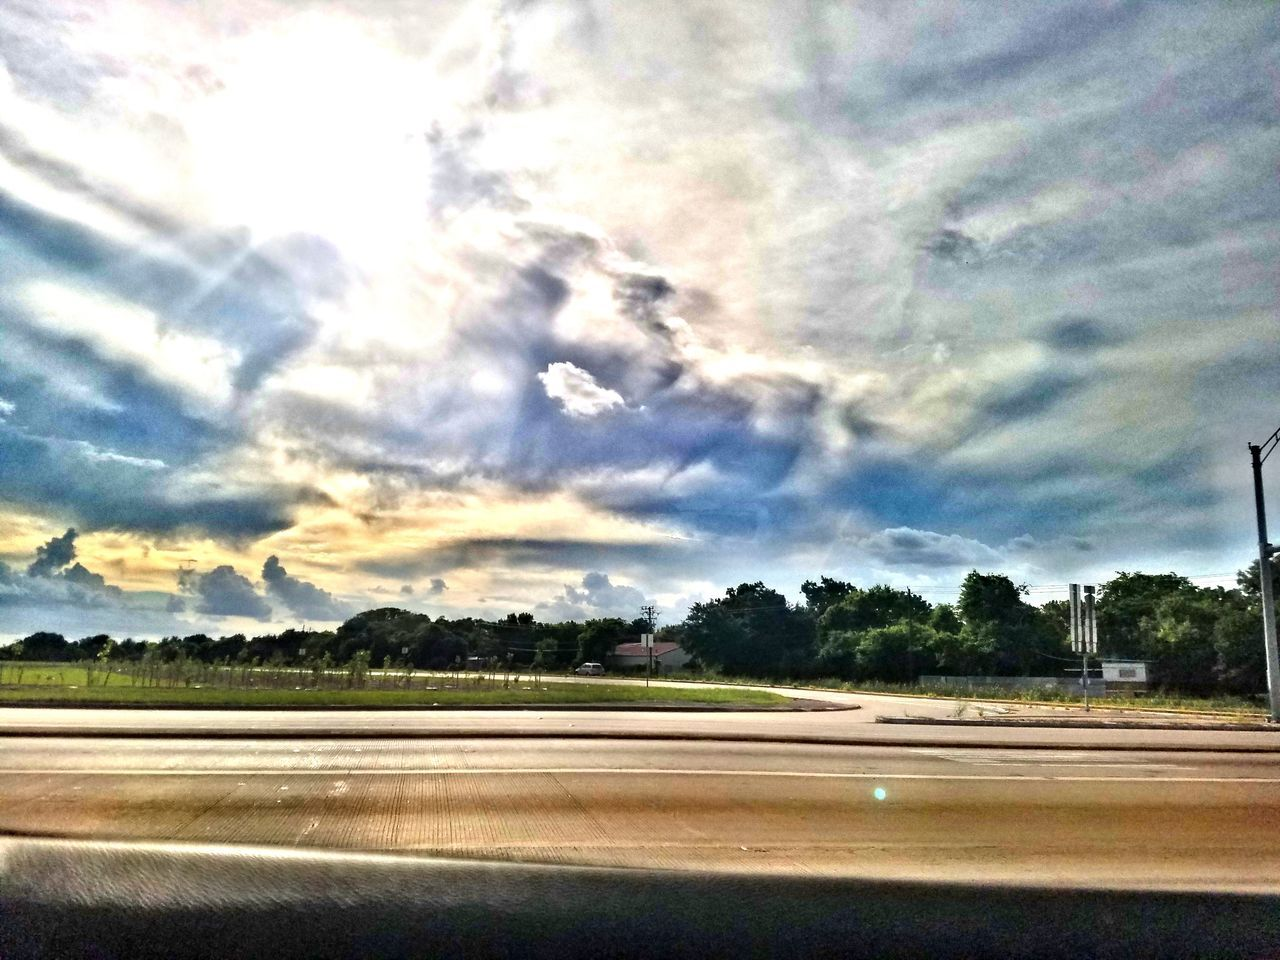 sky, road, cloud - sky, nature, no people, landscape, transportation, outdoors, scenics, tree, beauty in nature, day